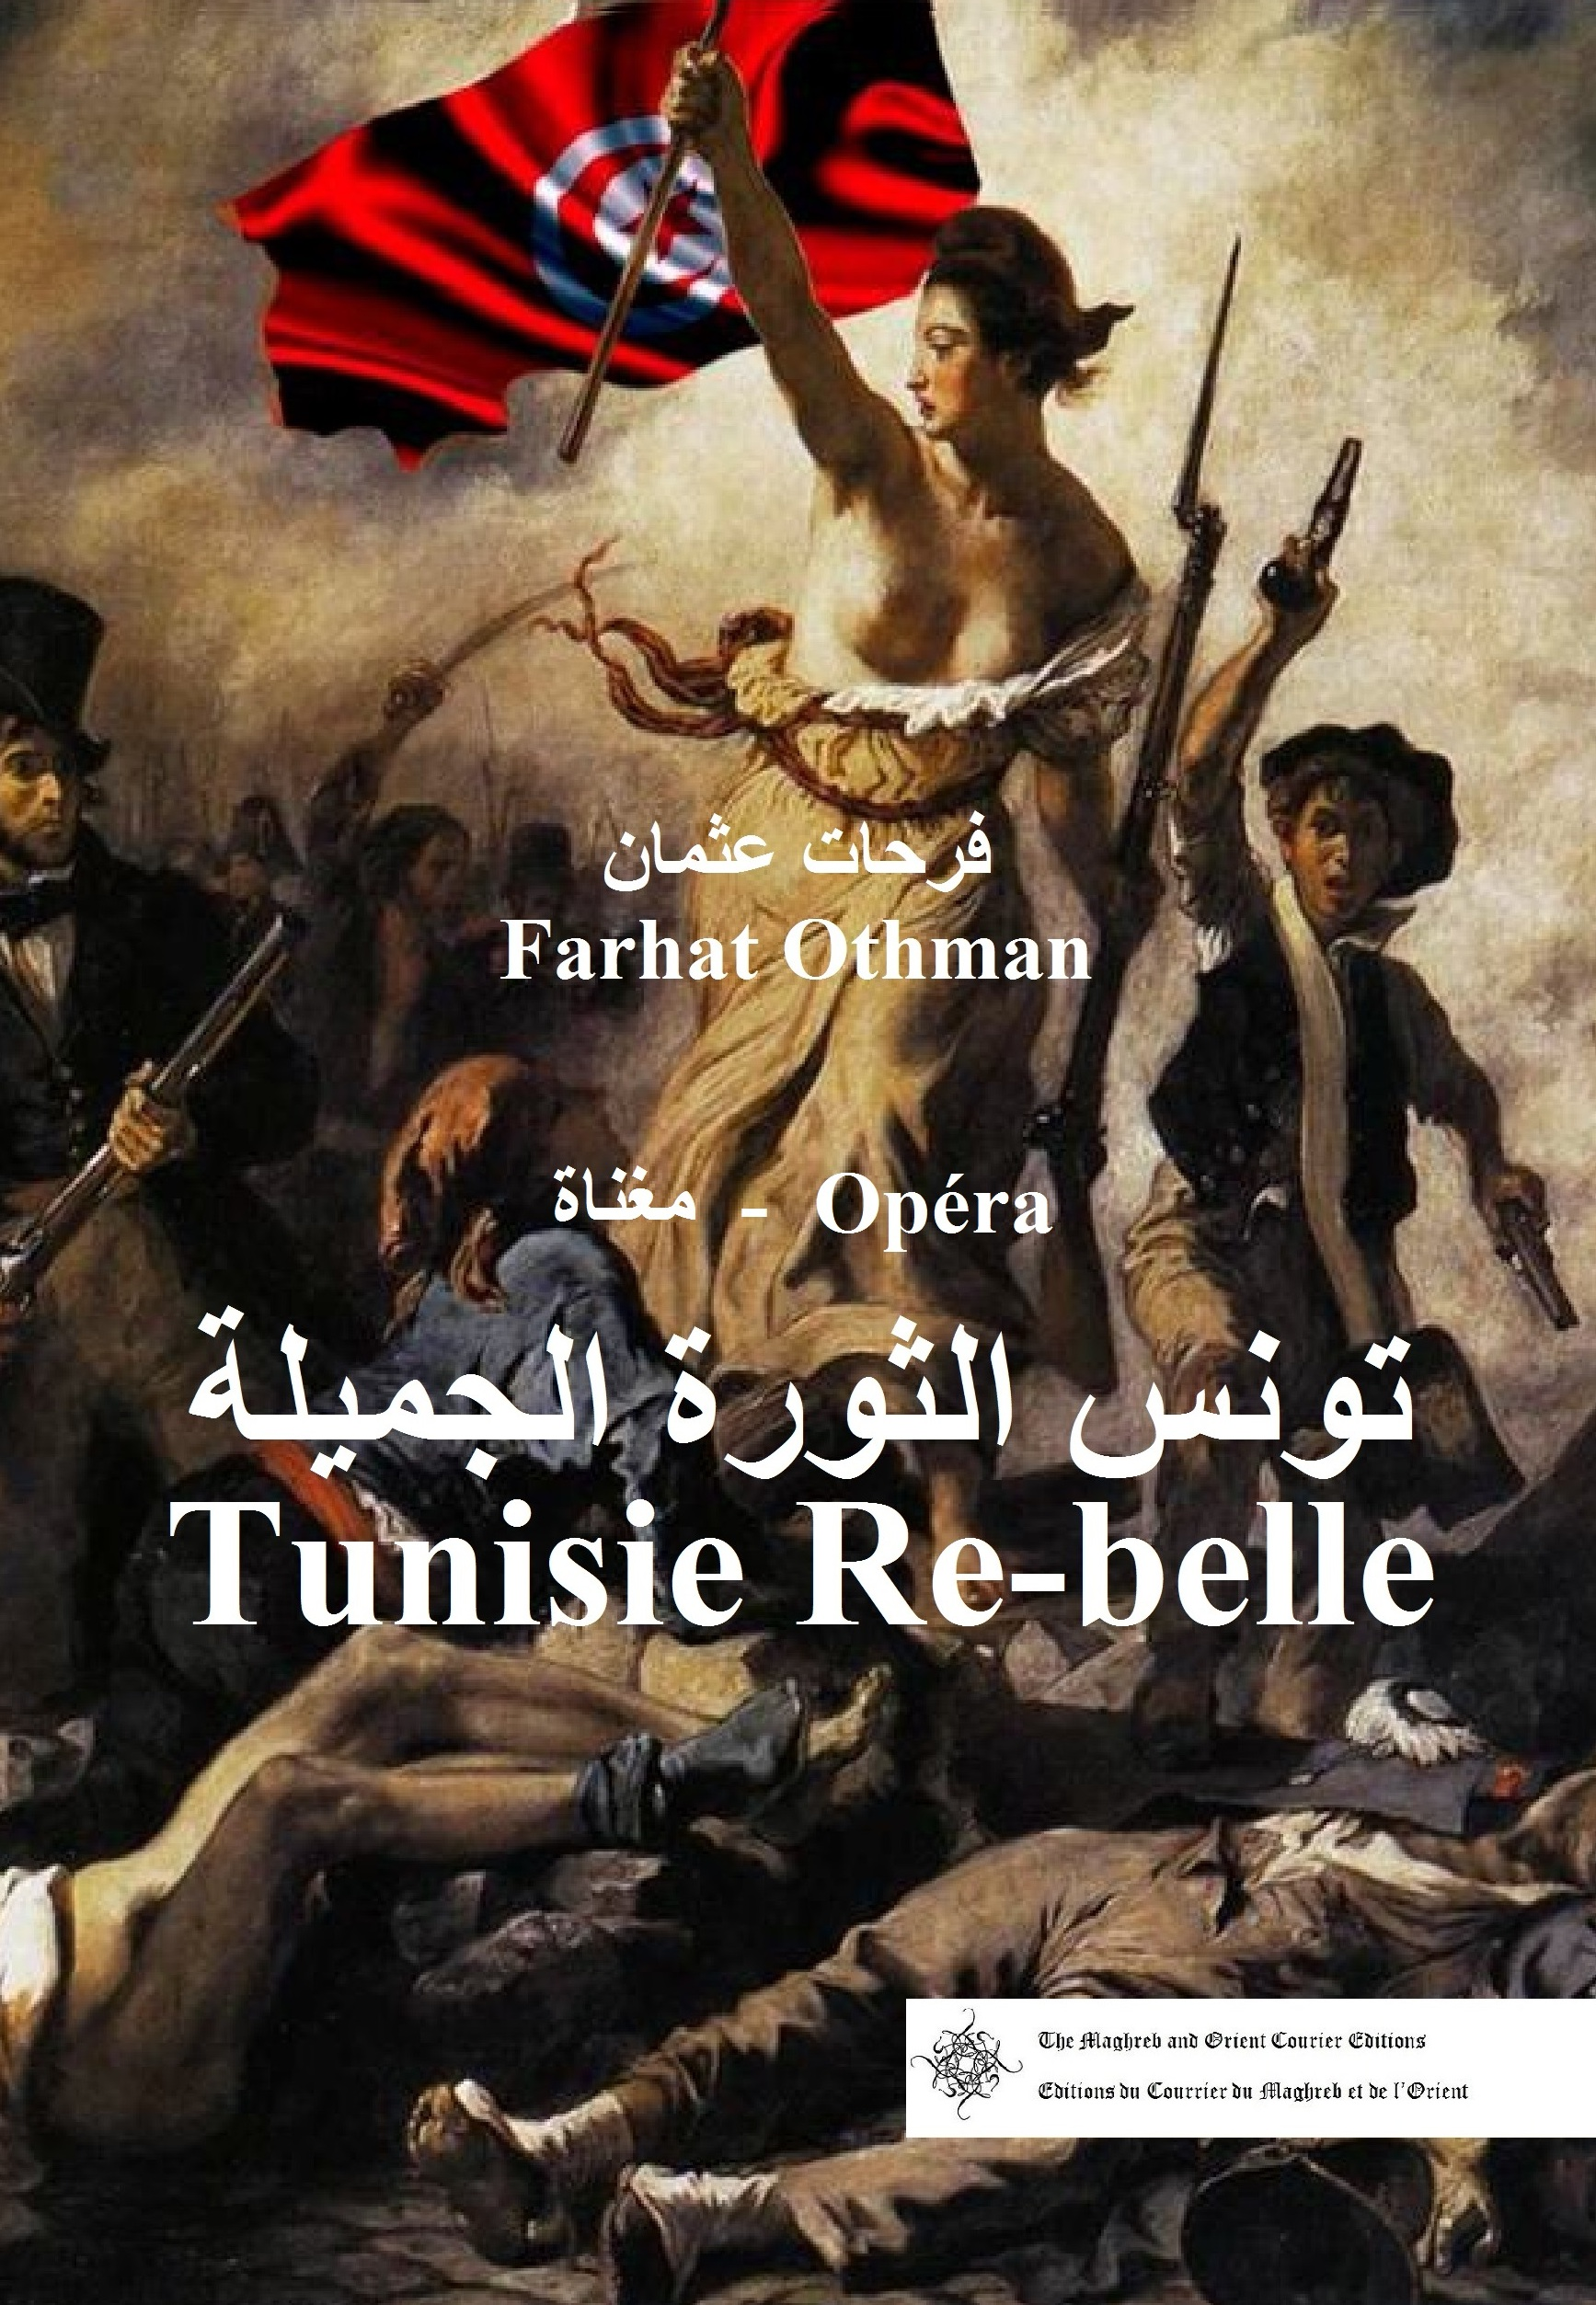 RECTO - Couverture - Opéra - Tunisie Re-belle (Farhat Othman)